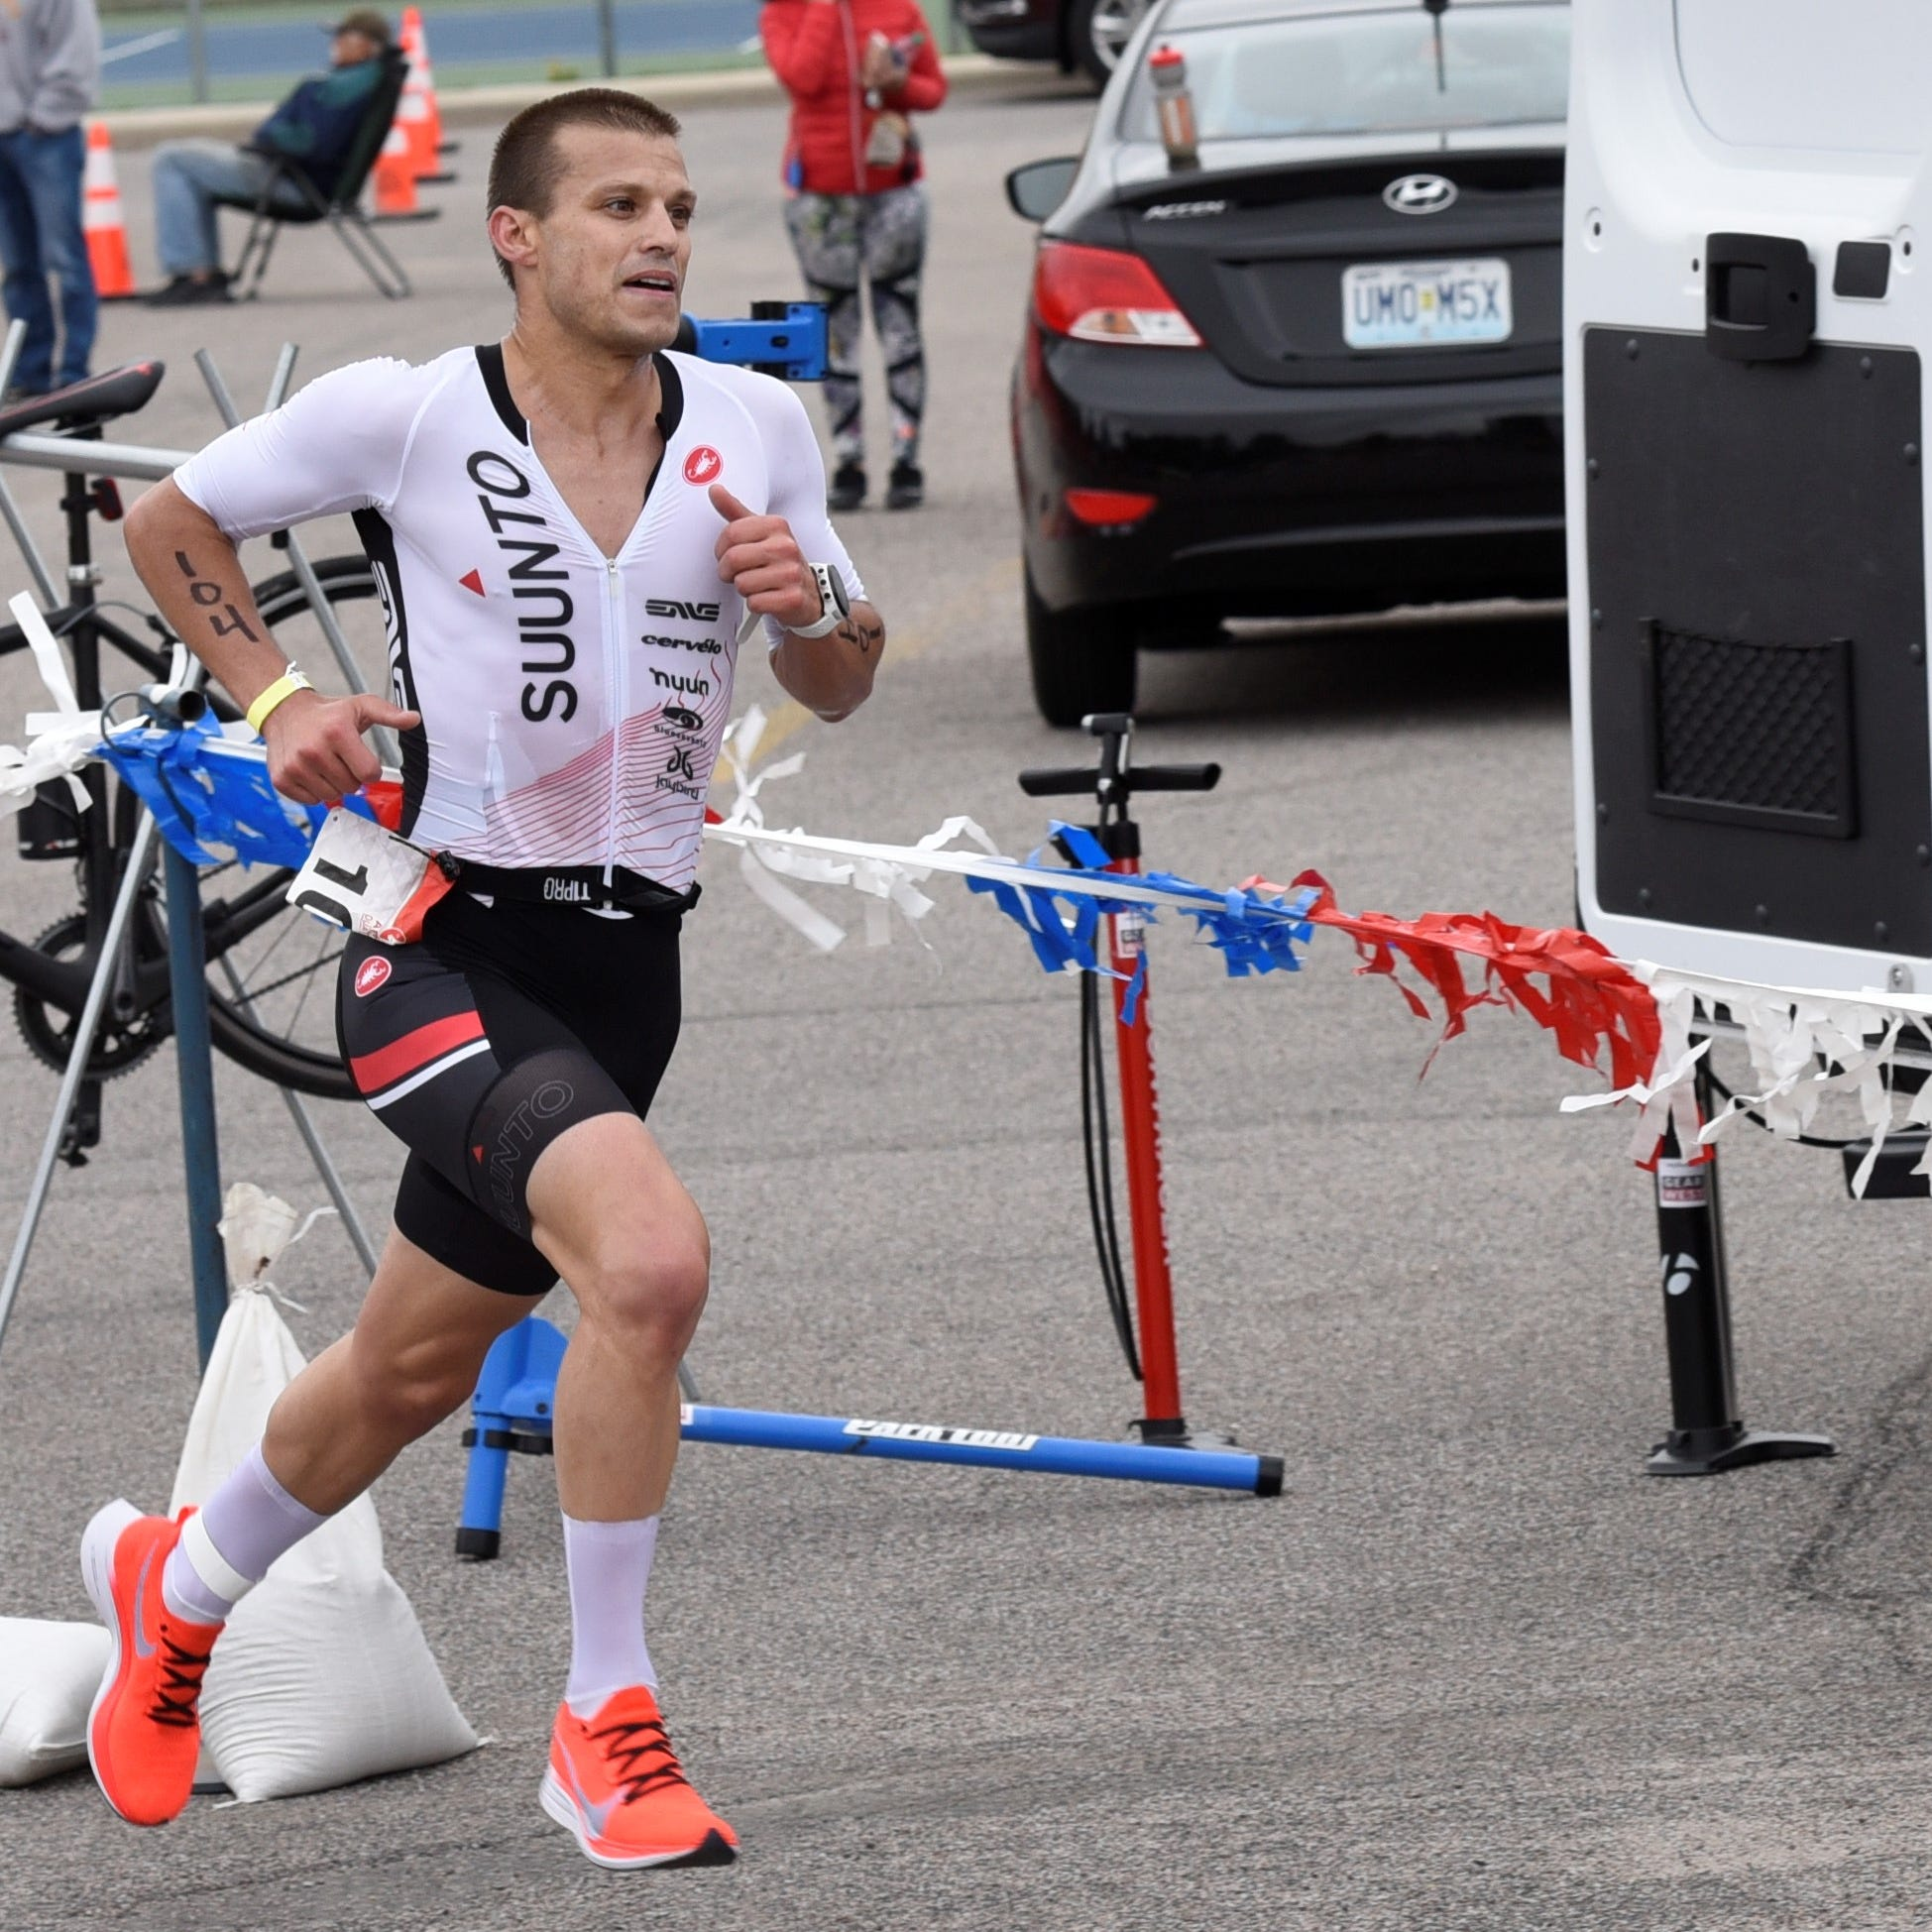 A good day for a duathlon for men's champ